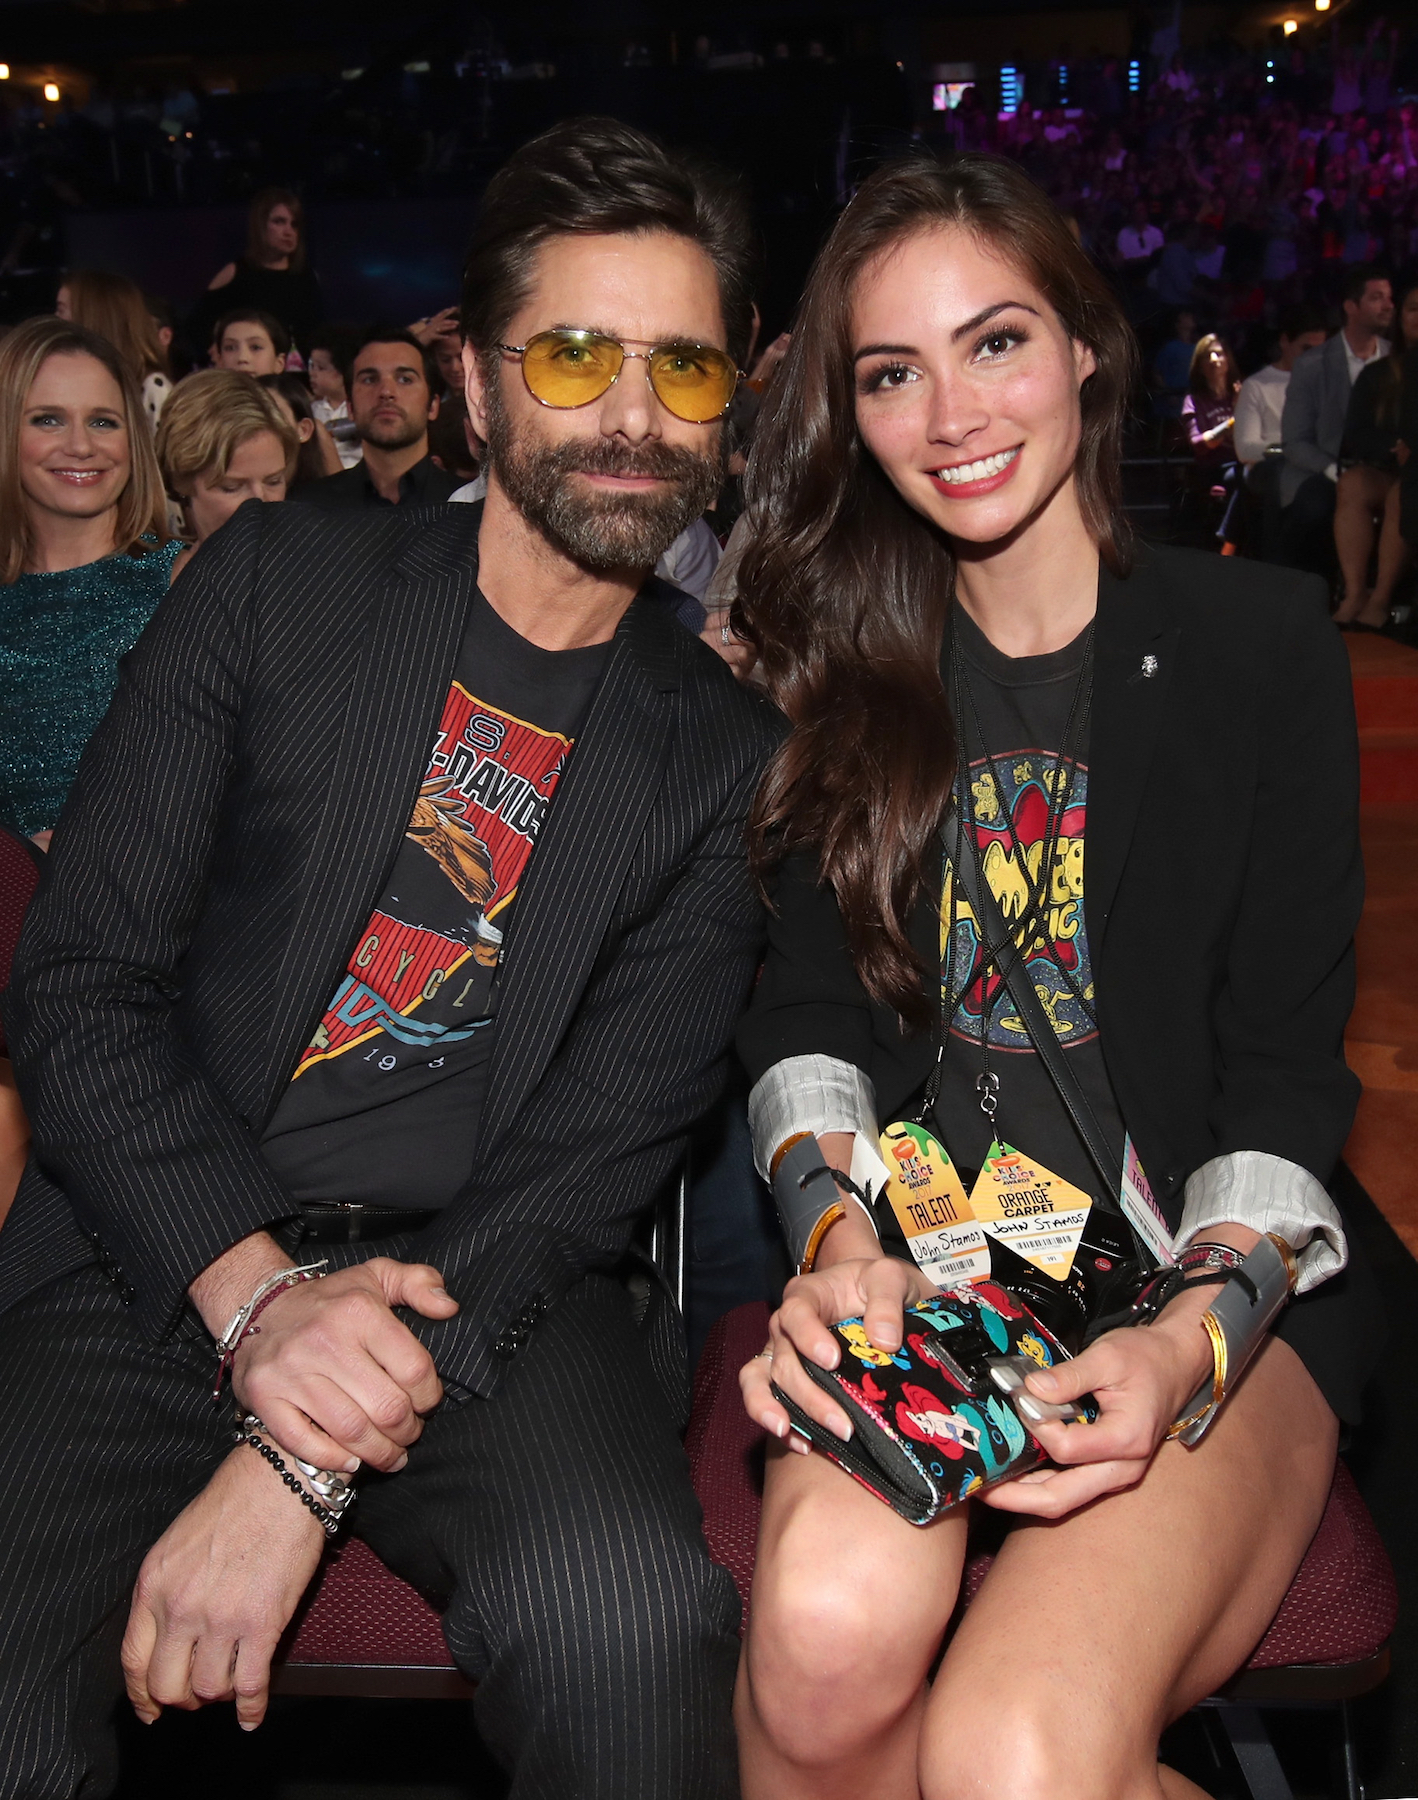 John Stamos is engaged to Caitlin McHugh